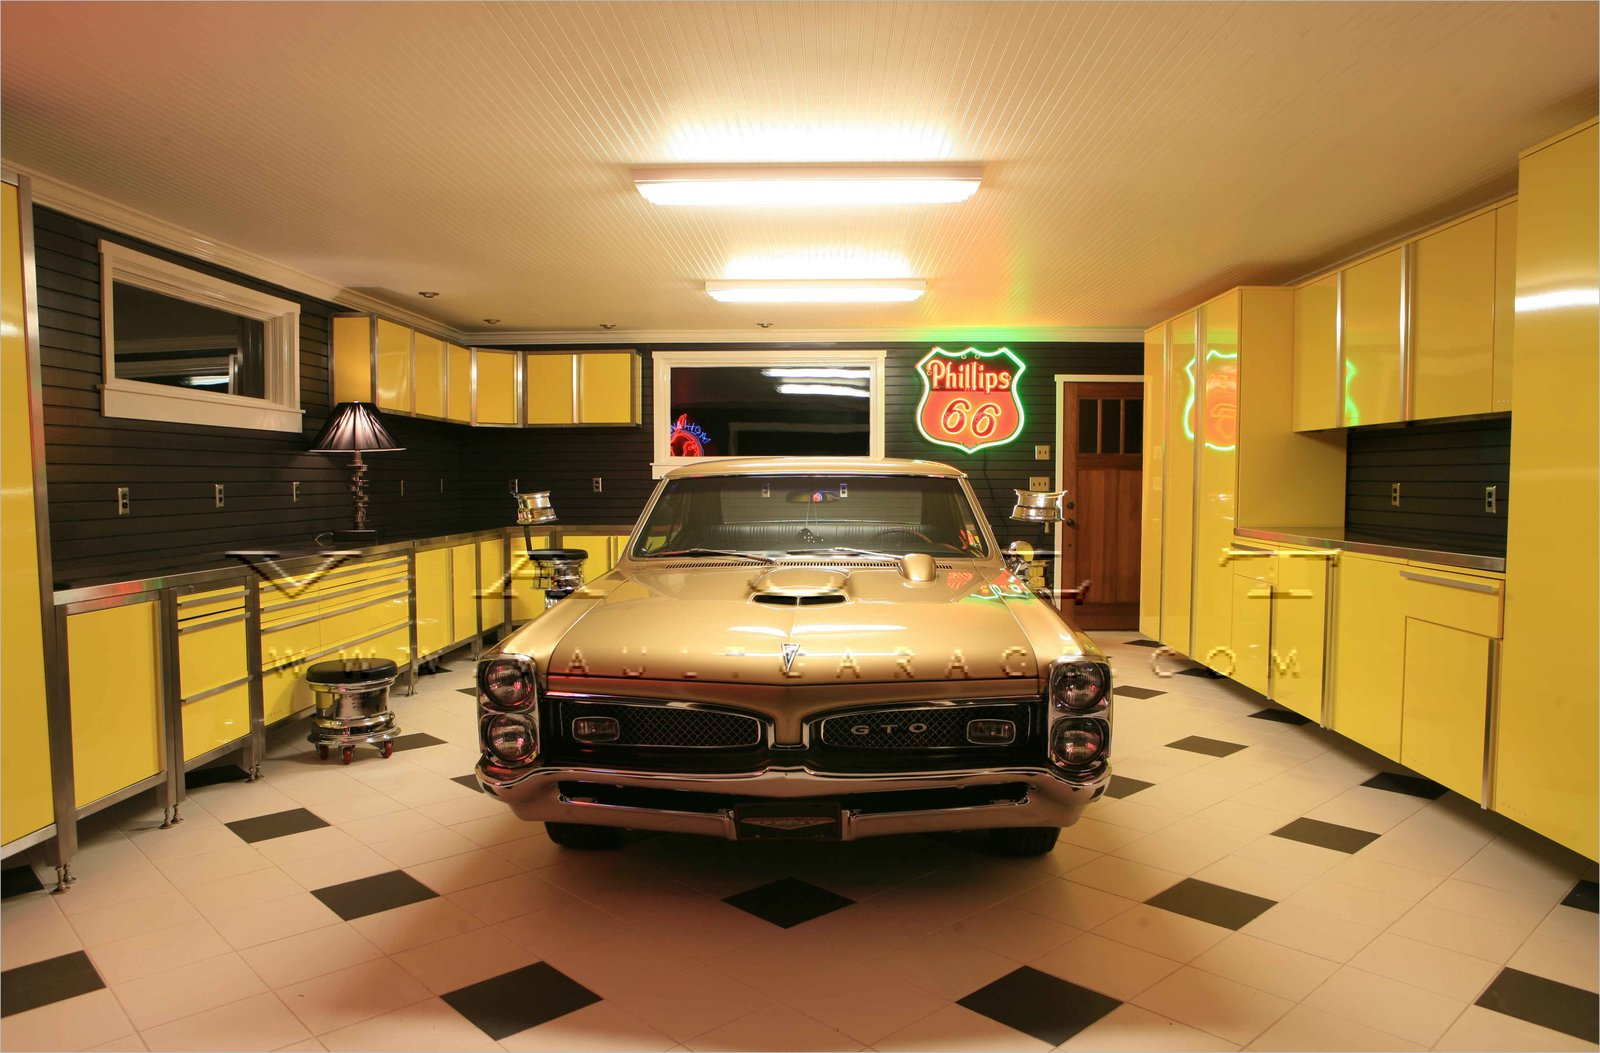 Garage and Attached Garage Room Type From beautiful carriage doors to stainless steel cabinets and antique memorabilia neon signs, Portland-based company Vault designs gorgeous spaces  Photo 8 of 10 in 10 Prefab Garage Solutions For Auto Enthusiasts